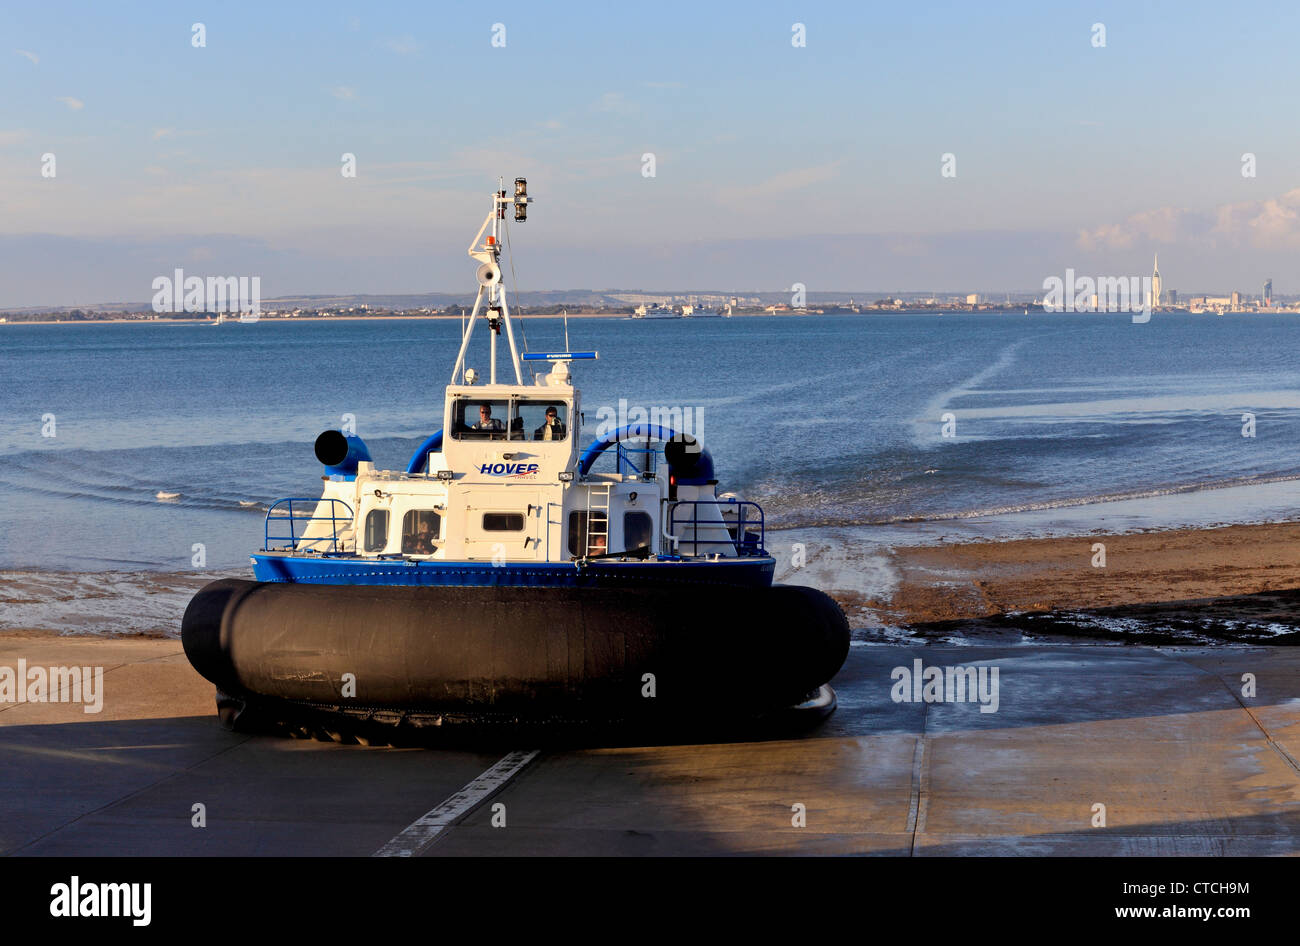 4148. Hovercraft arriving at Ryde, Isle of Wight, UK - Stock Image